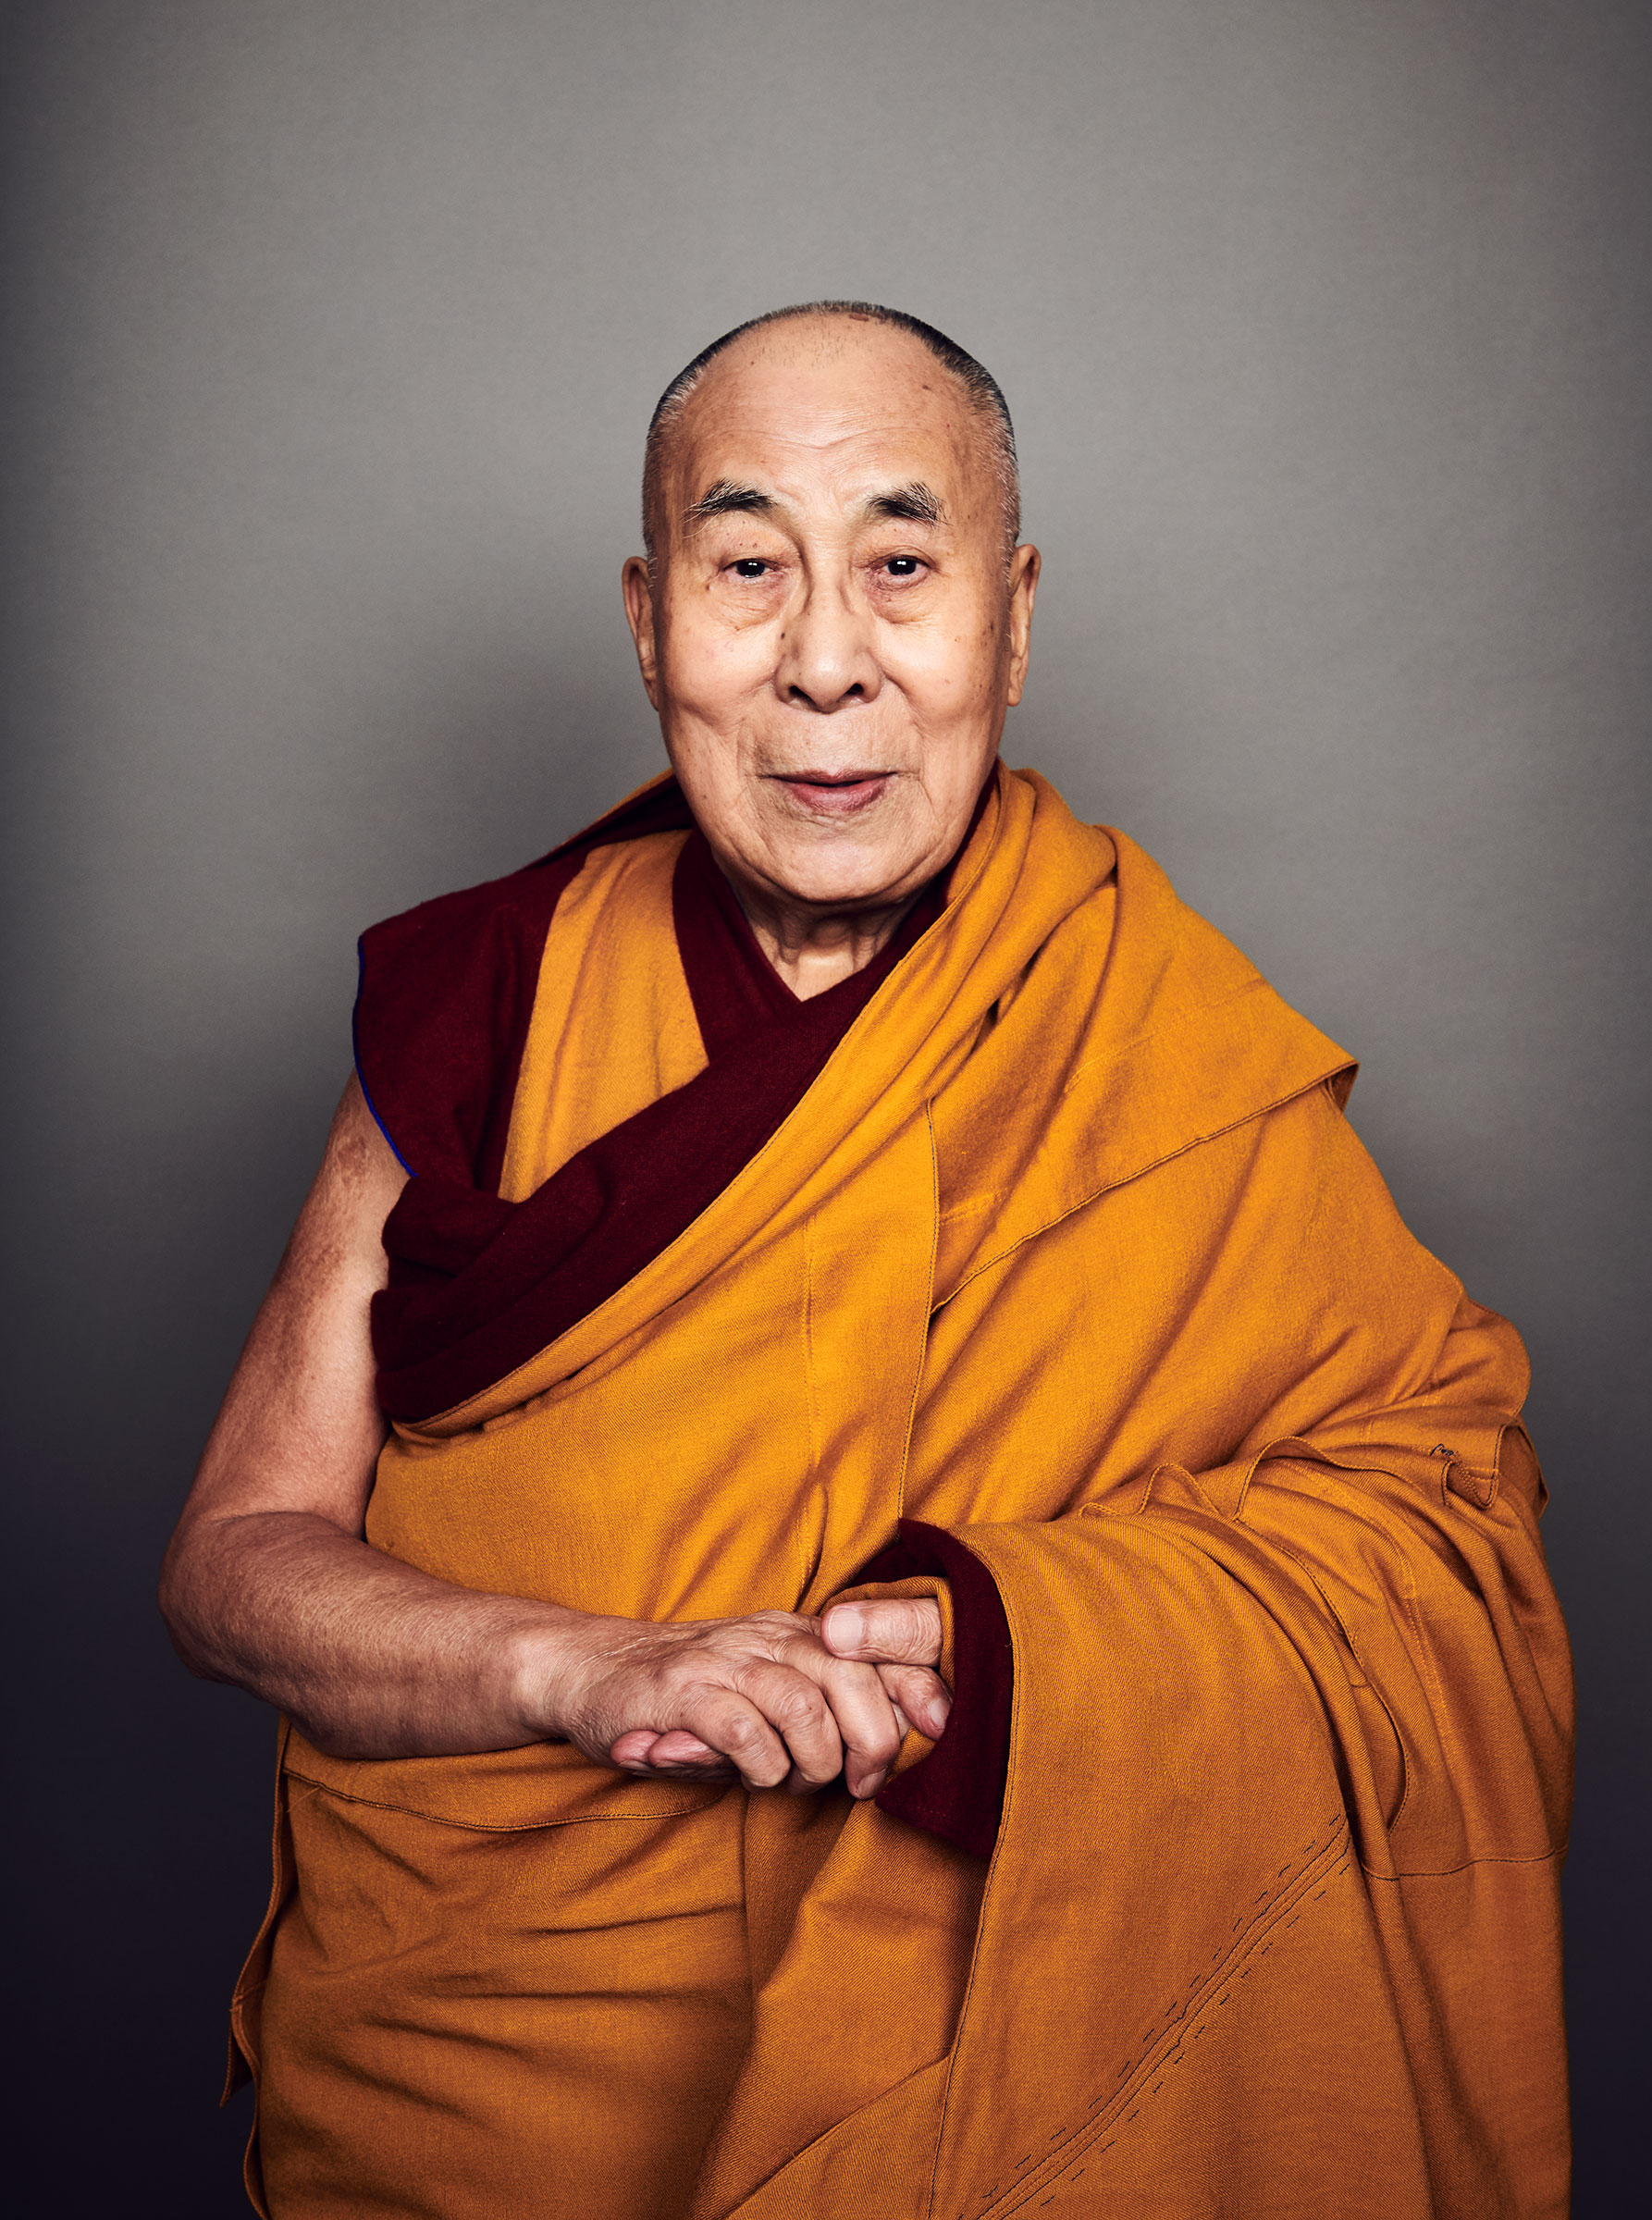 Prayer is not enough. 'The Dalai Lama because we need Corona with the struggle of compassion